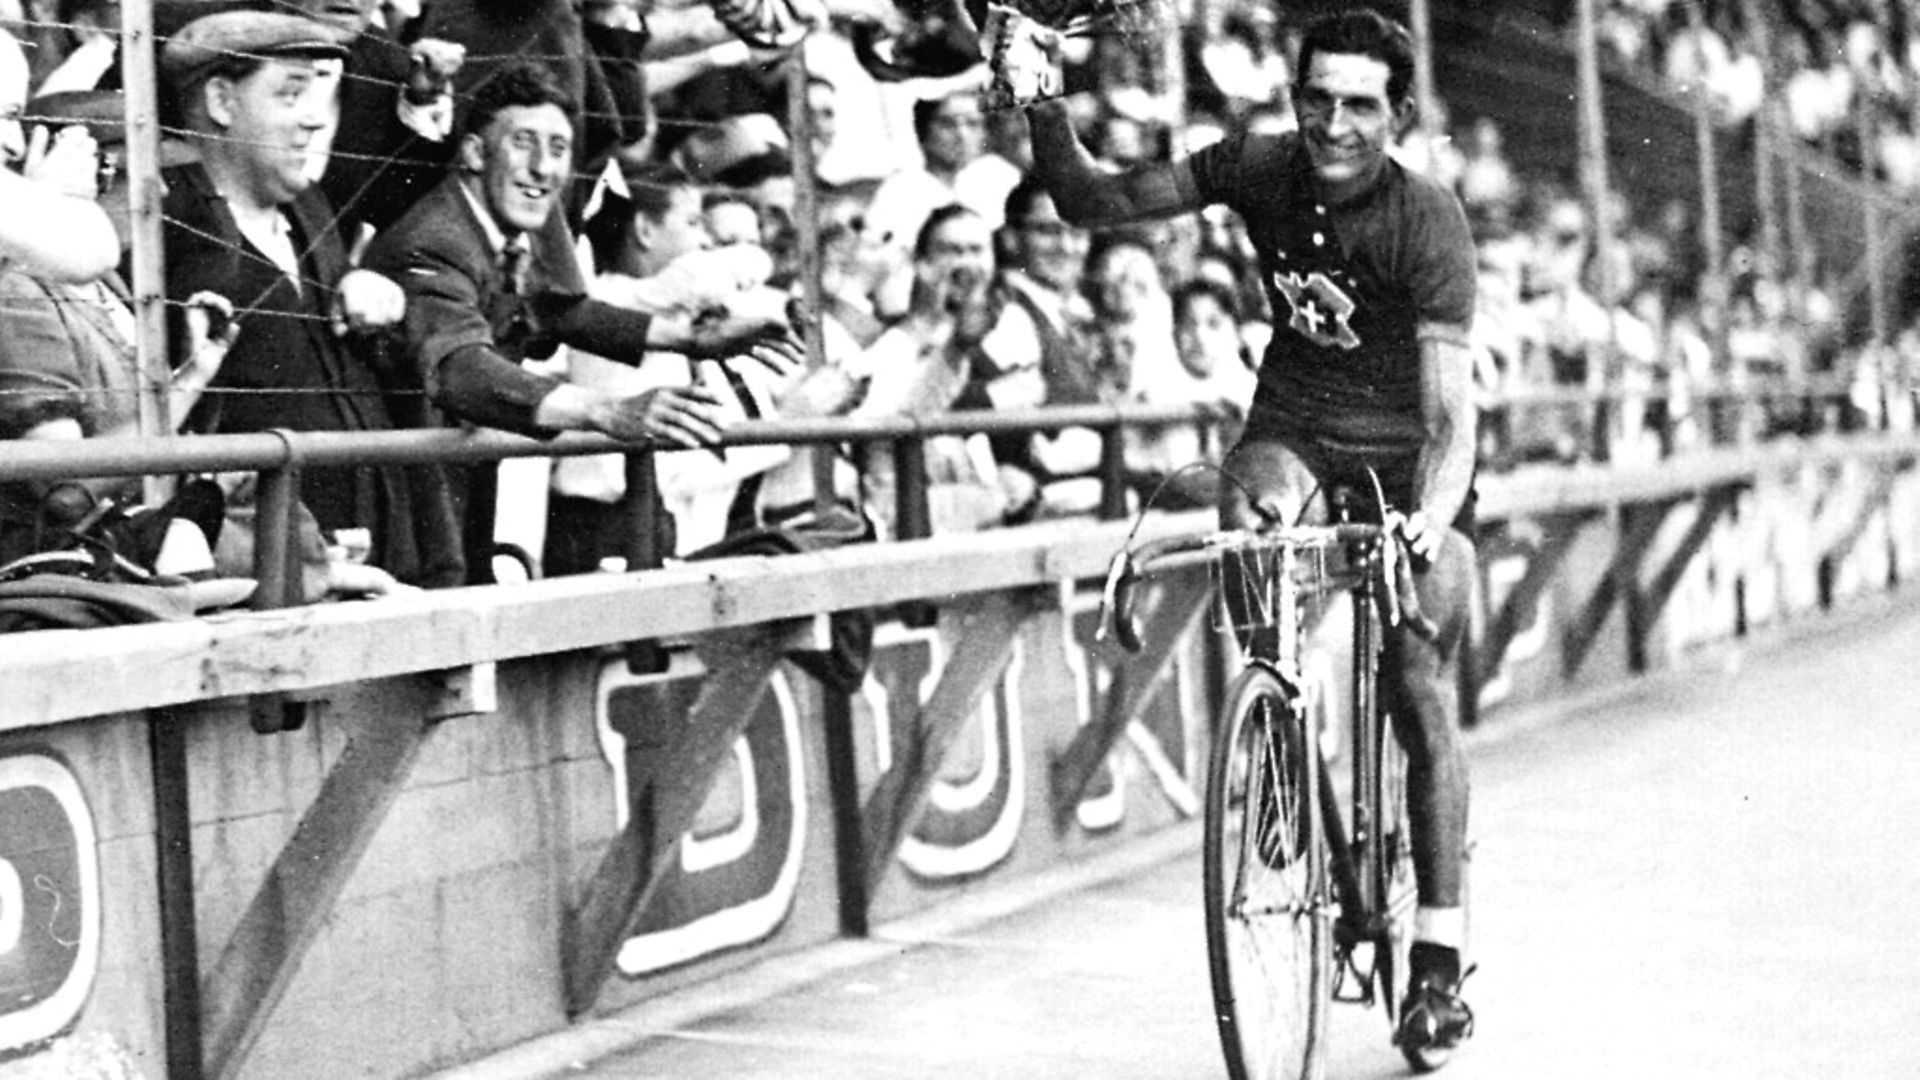 Italian racing cyclist Gino Bartali celebrating his Tour de France victory, 31st July 1938. Photo by Roger Viollet/Getty Images - Credit: Roger Viollet/Getty Images